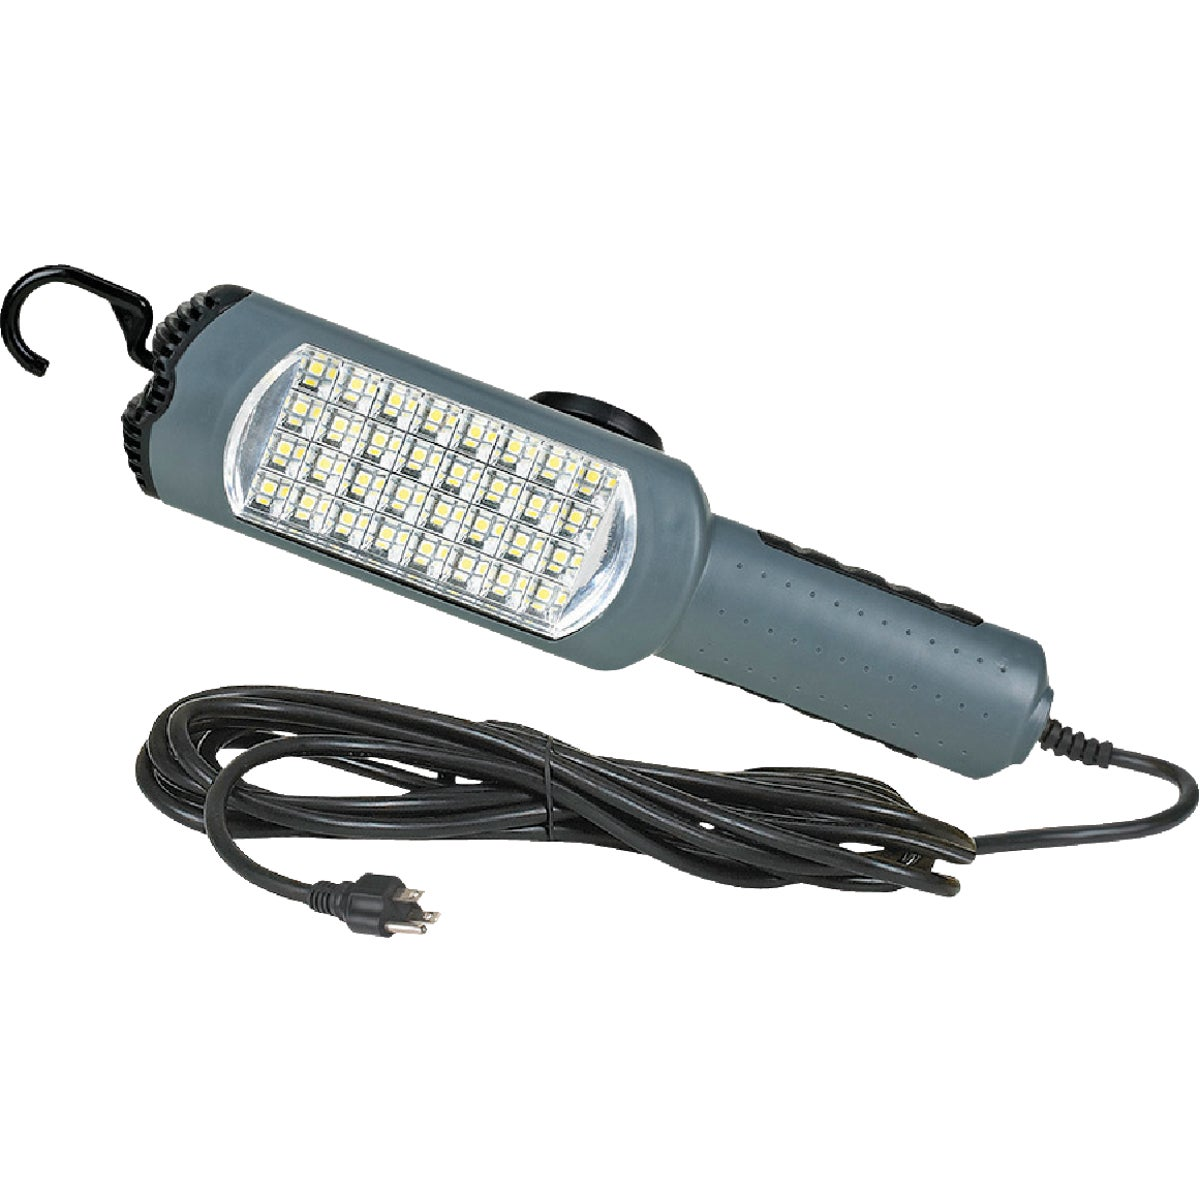 LED WORKLIGHT - LET50-15G by Alert Stamping & Mfg